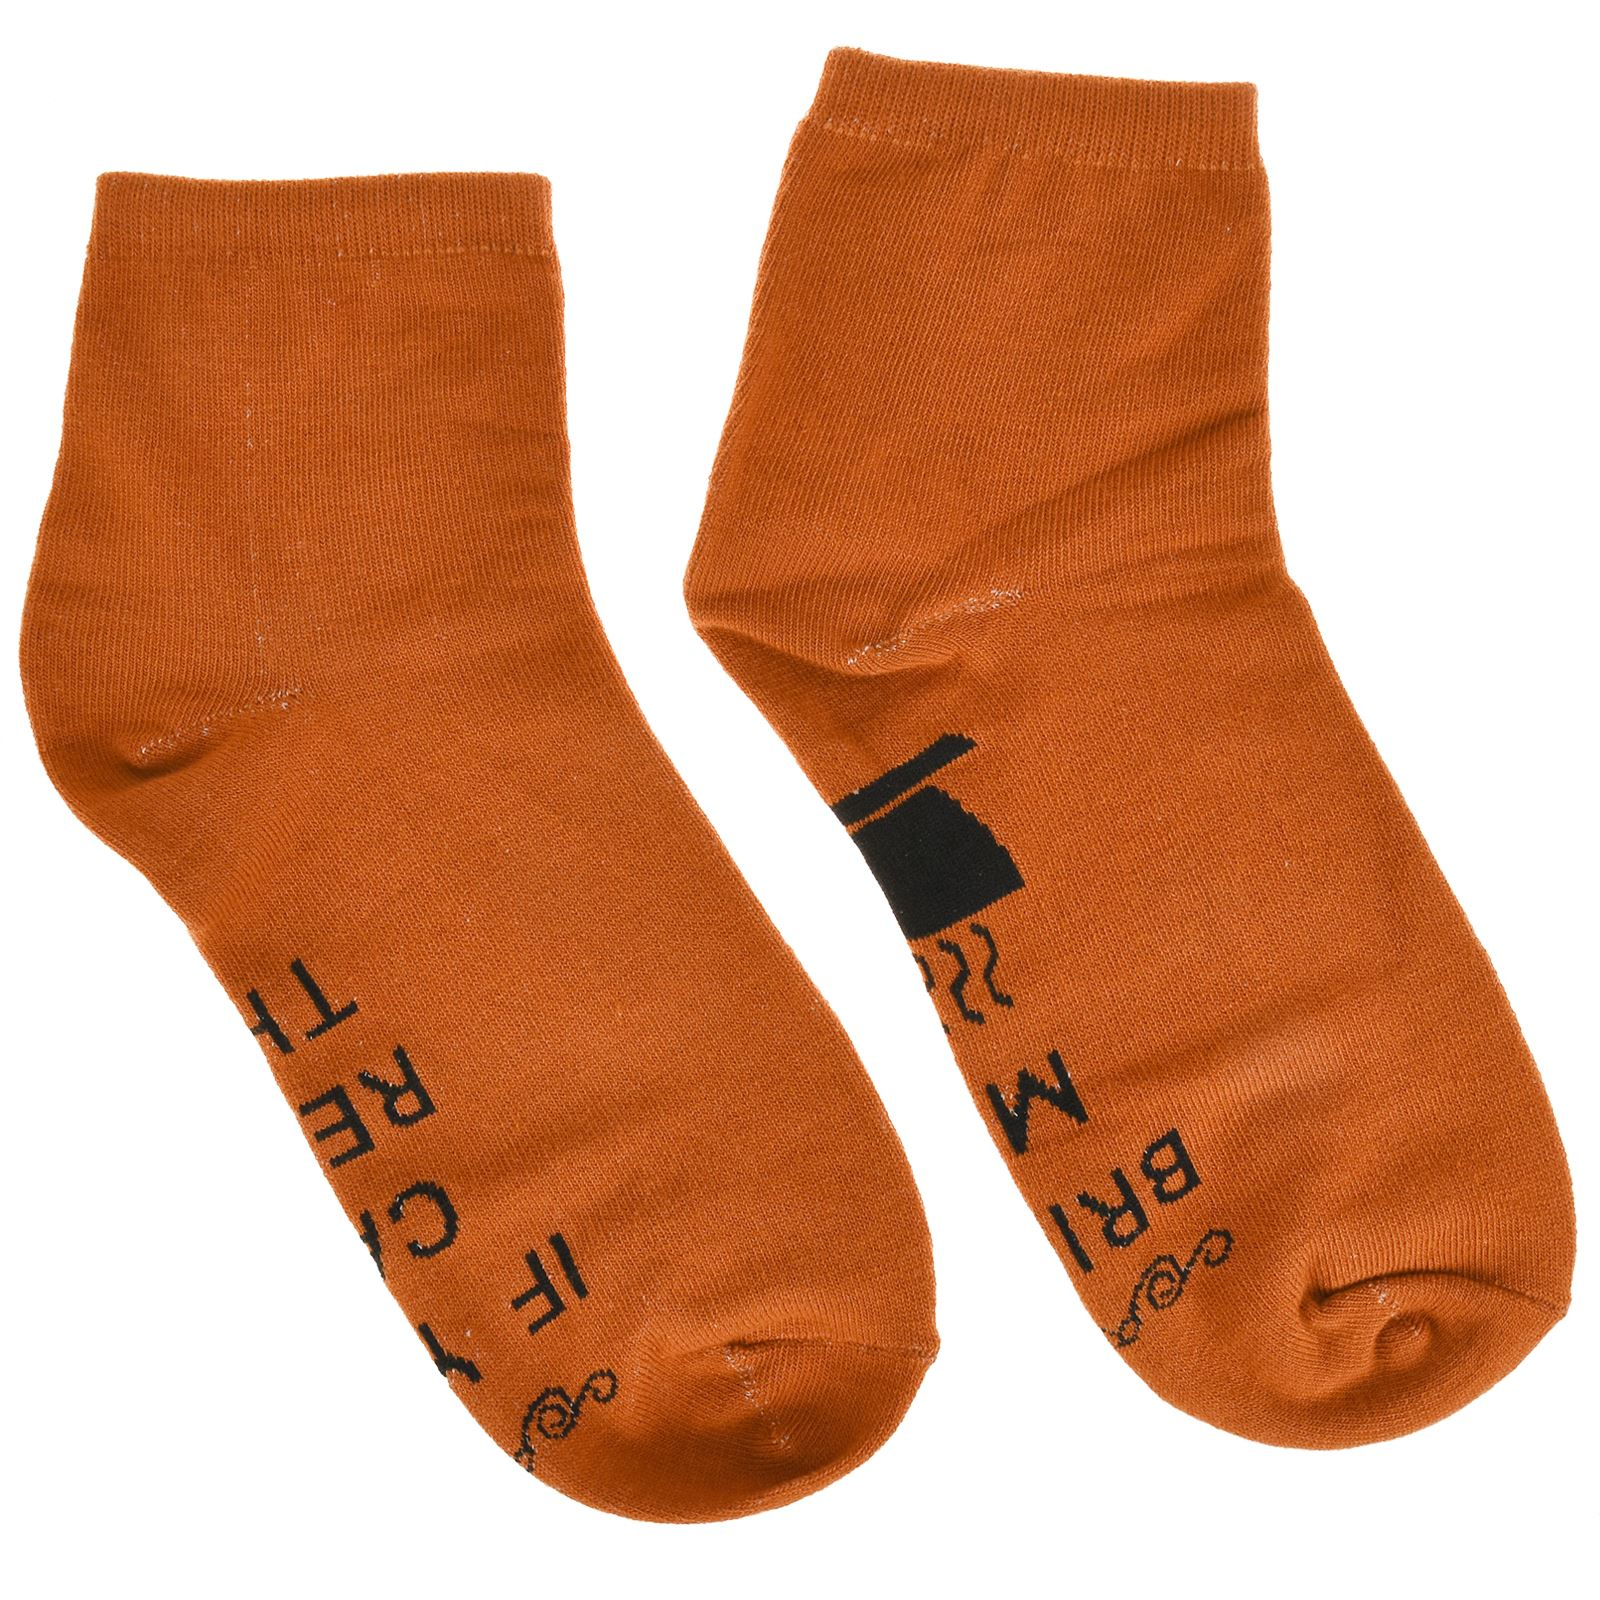 Pair Adult Novelty Socks Funny Rude Slogan Gift Soft Warm Coloured Cotton Blend